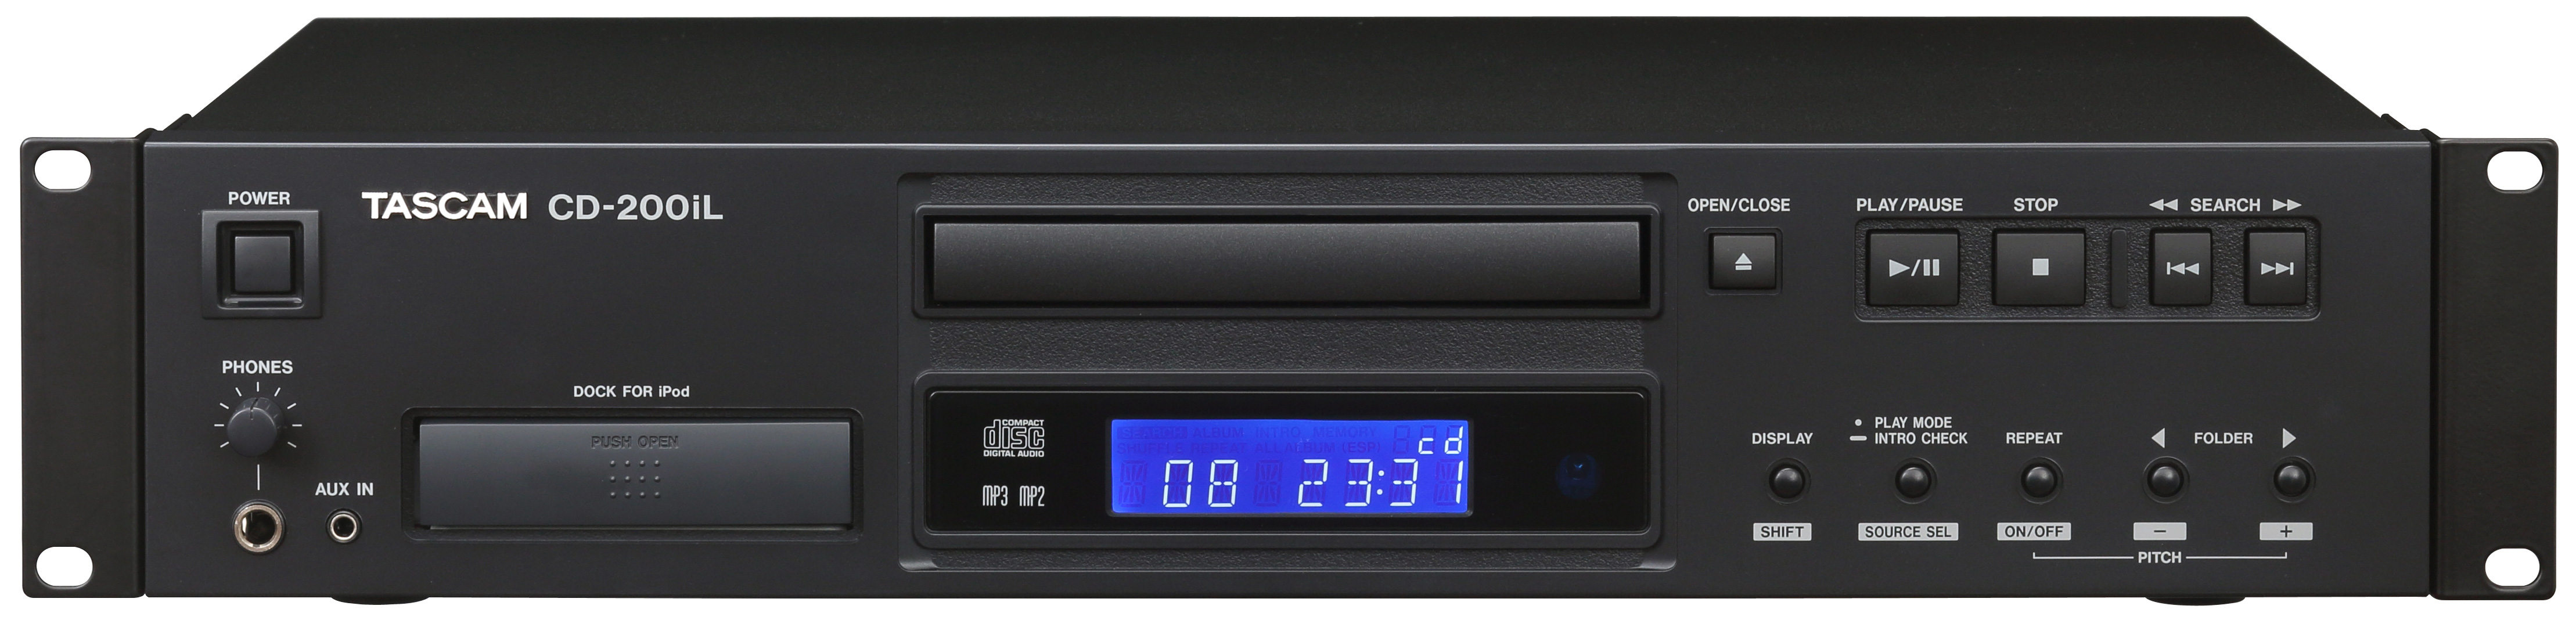 Tascam Cd 200il Professional Single Cd Player